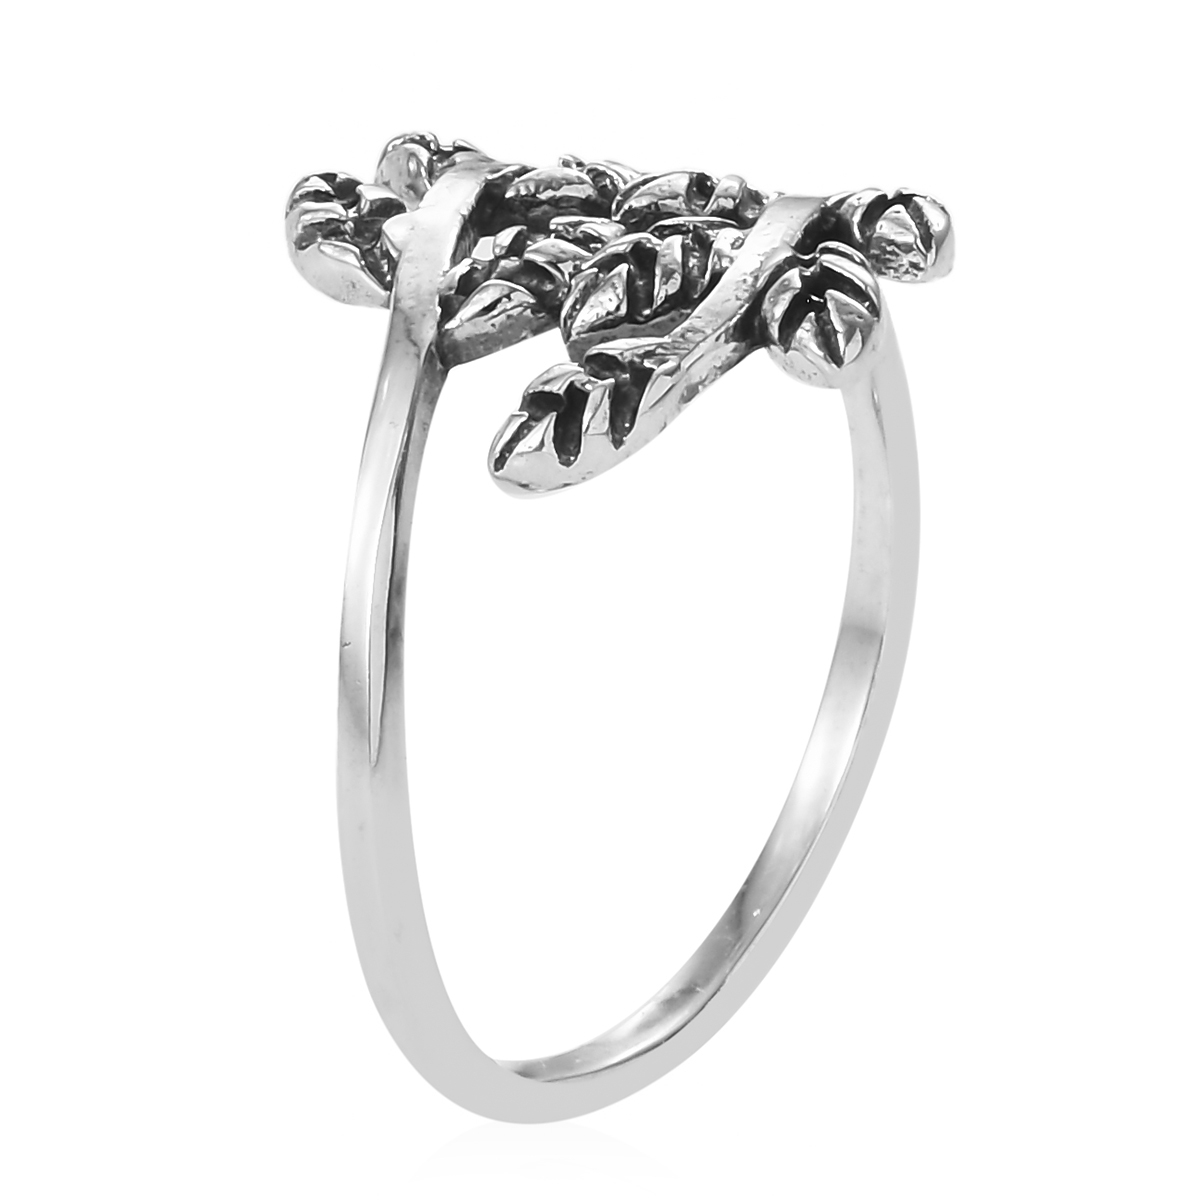 artisan crafted sterling silver leaf ring size 10 3 3 g Pandora Leaf Ring artisan crafted sterling silver leaf ring size 10 3 3 g